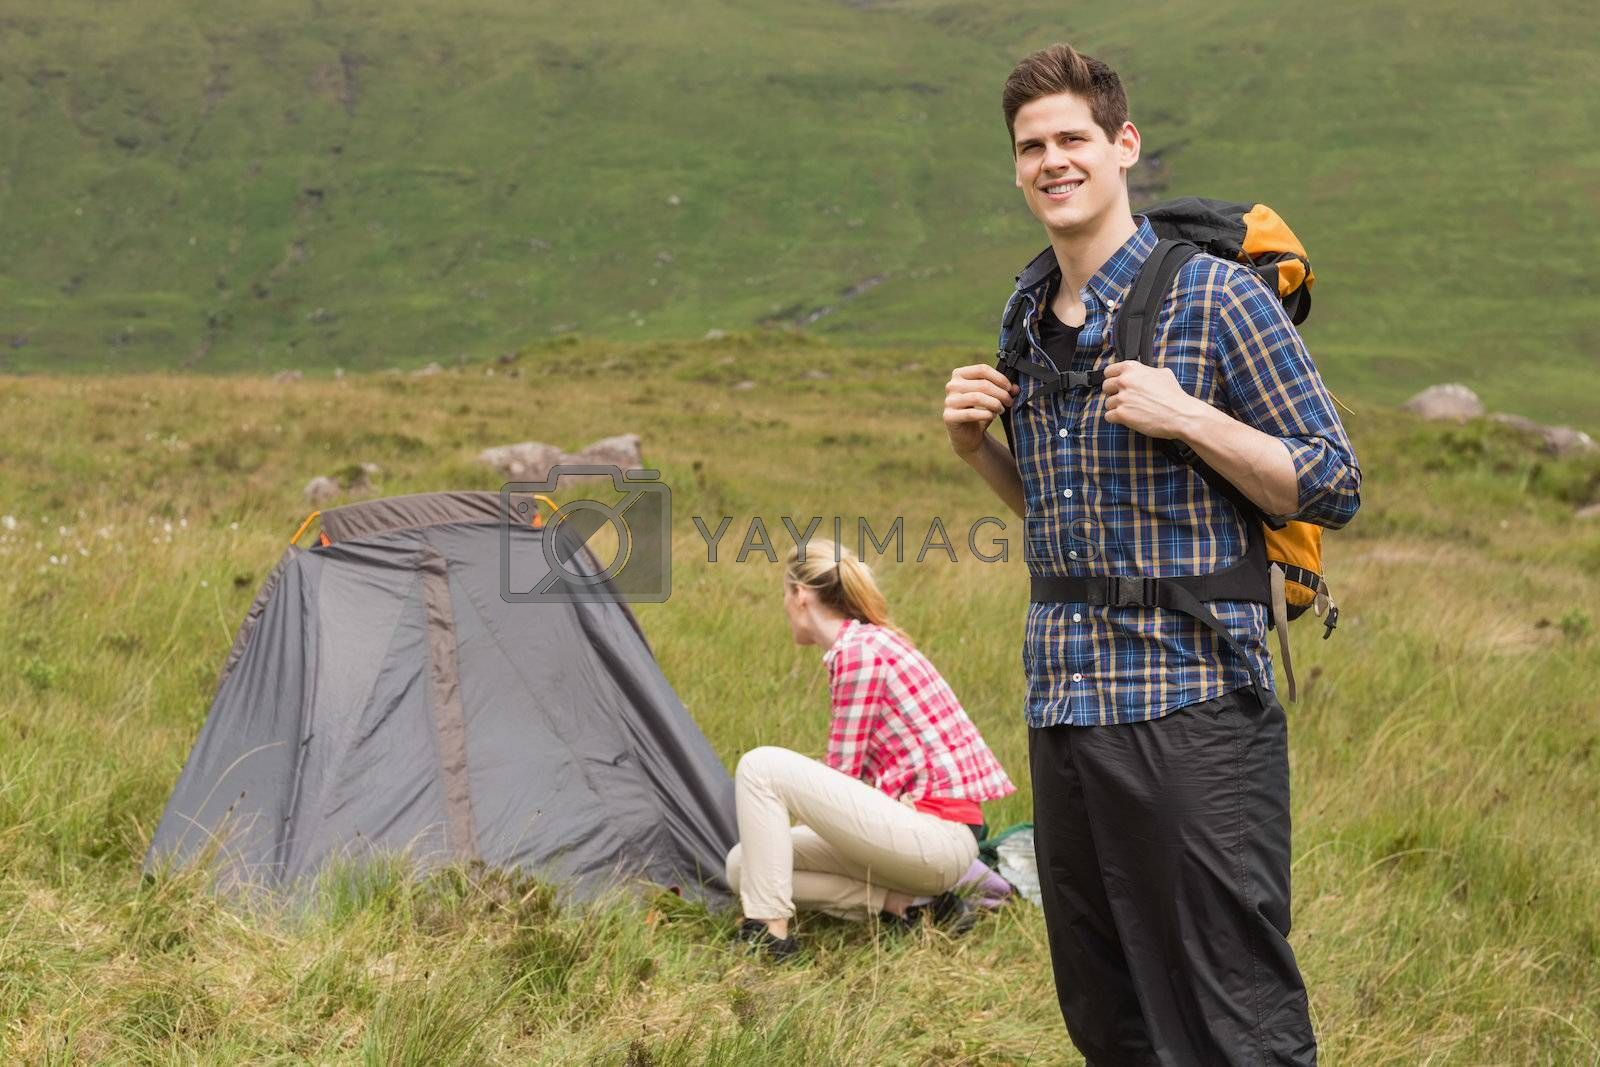 Smiling man carrying backpack while girlfriend is pitching tent by Wavebreakmedia